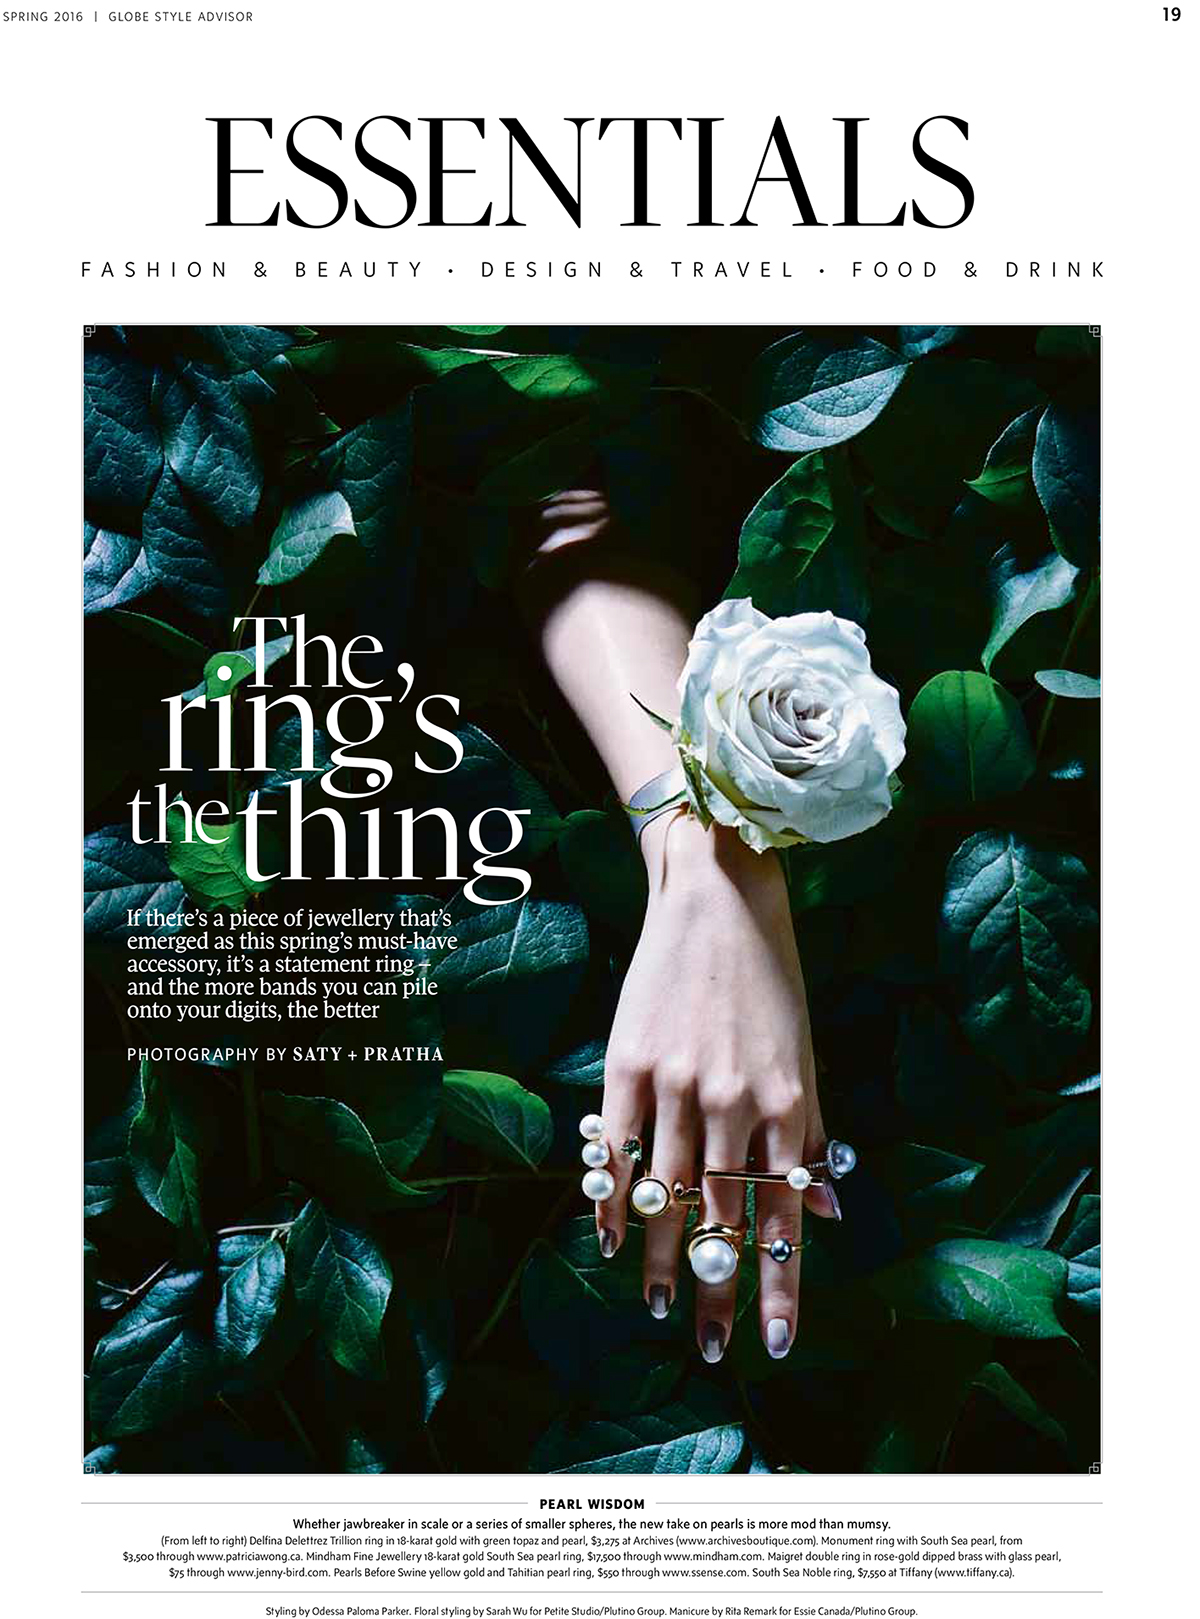 """The Ring's the Thing.""  Globe and Mail/Globe Style Advisor,  Spring 2016. Photo: Saty + Pratha. Art Director: Benjamin MacDonald. Editorial Director: Andrew Sardone. Styling: Odessa Paloma Parker. Manicure: Rita Remark/Plutino Group"